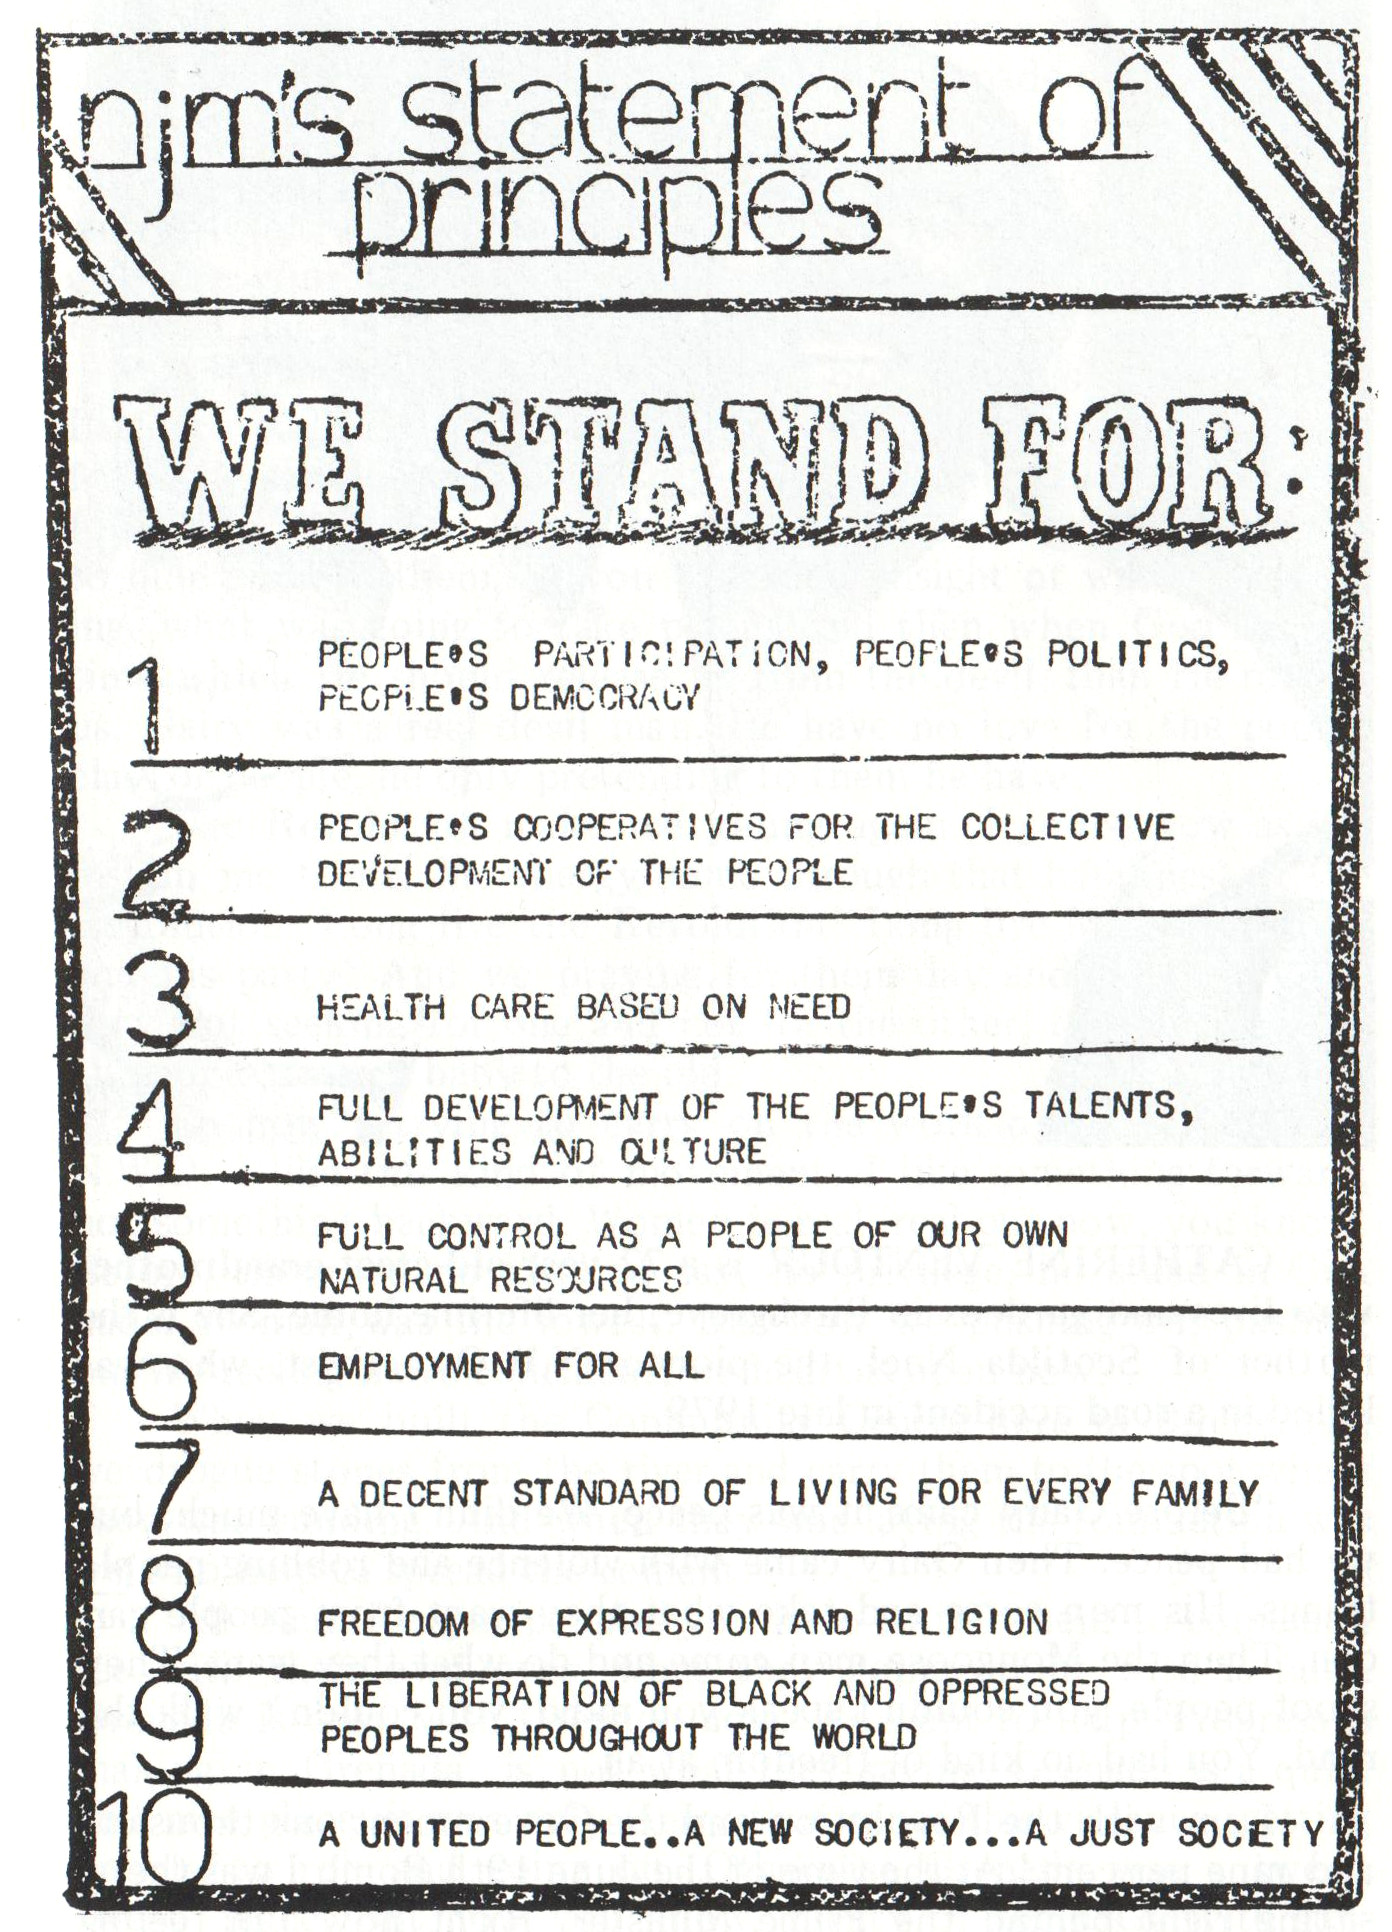 New Jewel Movement's Statement of Principles. Image courtesy Caribbean Labour Solidarity/University of the West Indies Grenada/Fedon Press